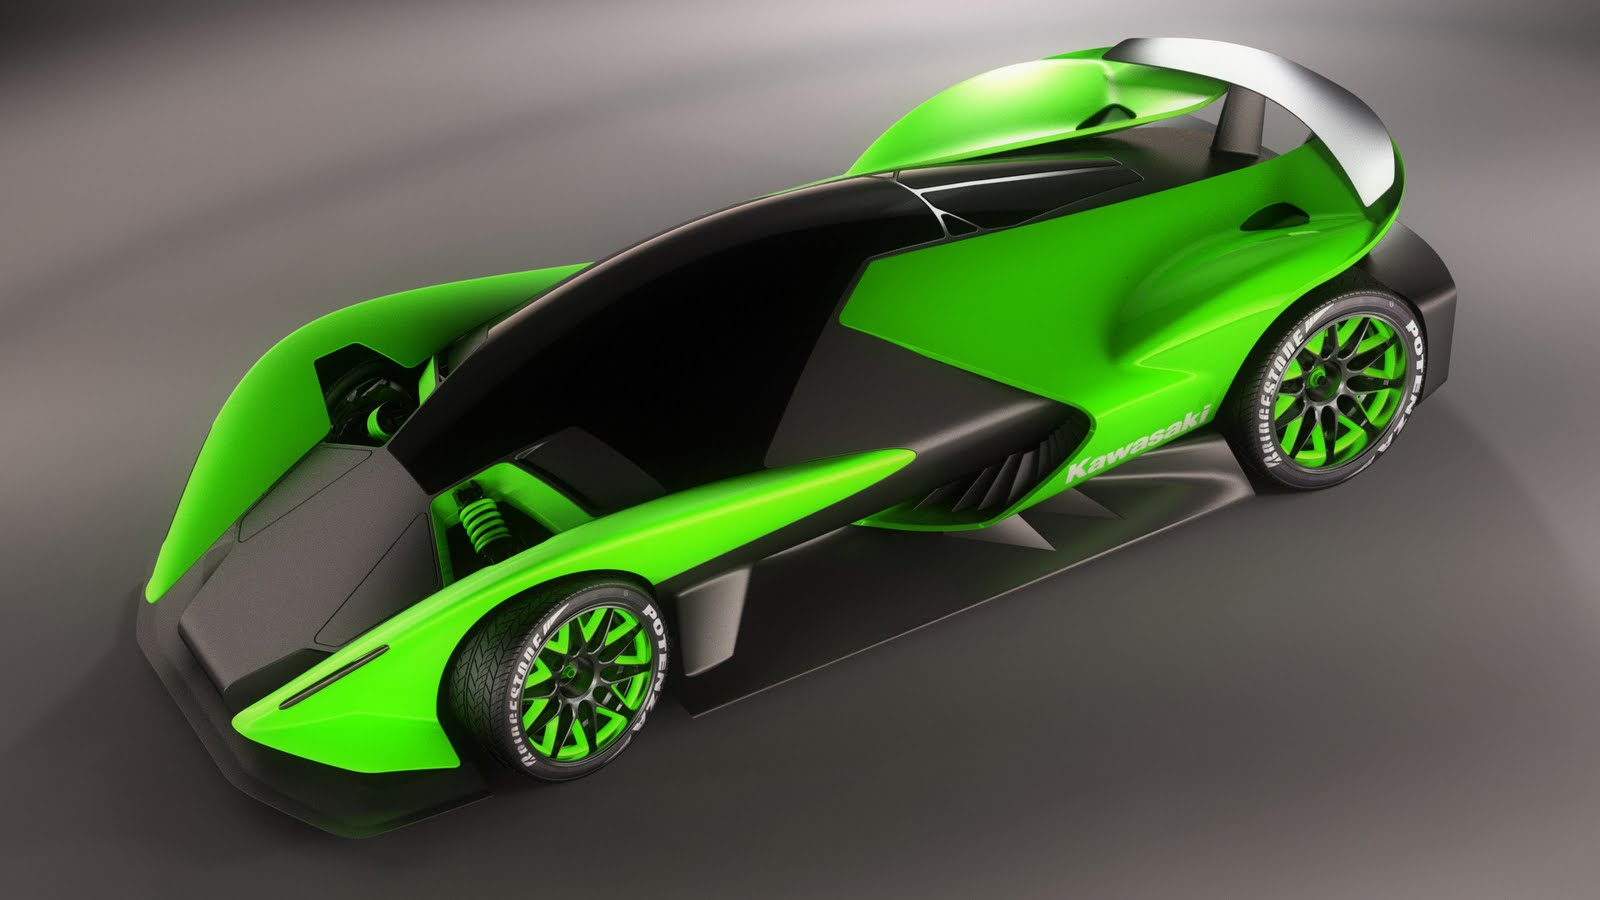 2011 Kawasaki ZX 770R Concept 3 2011 Kawasaki ZX 770R Concept to Be Upgraded Based on KTM X BOW